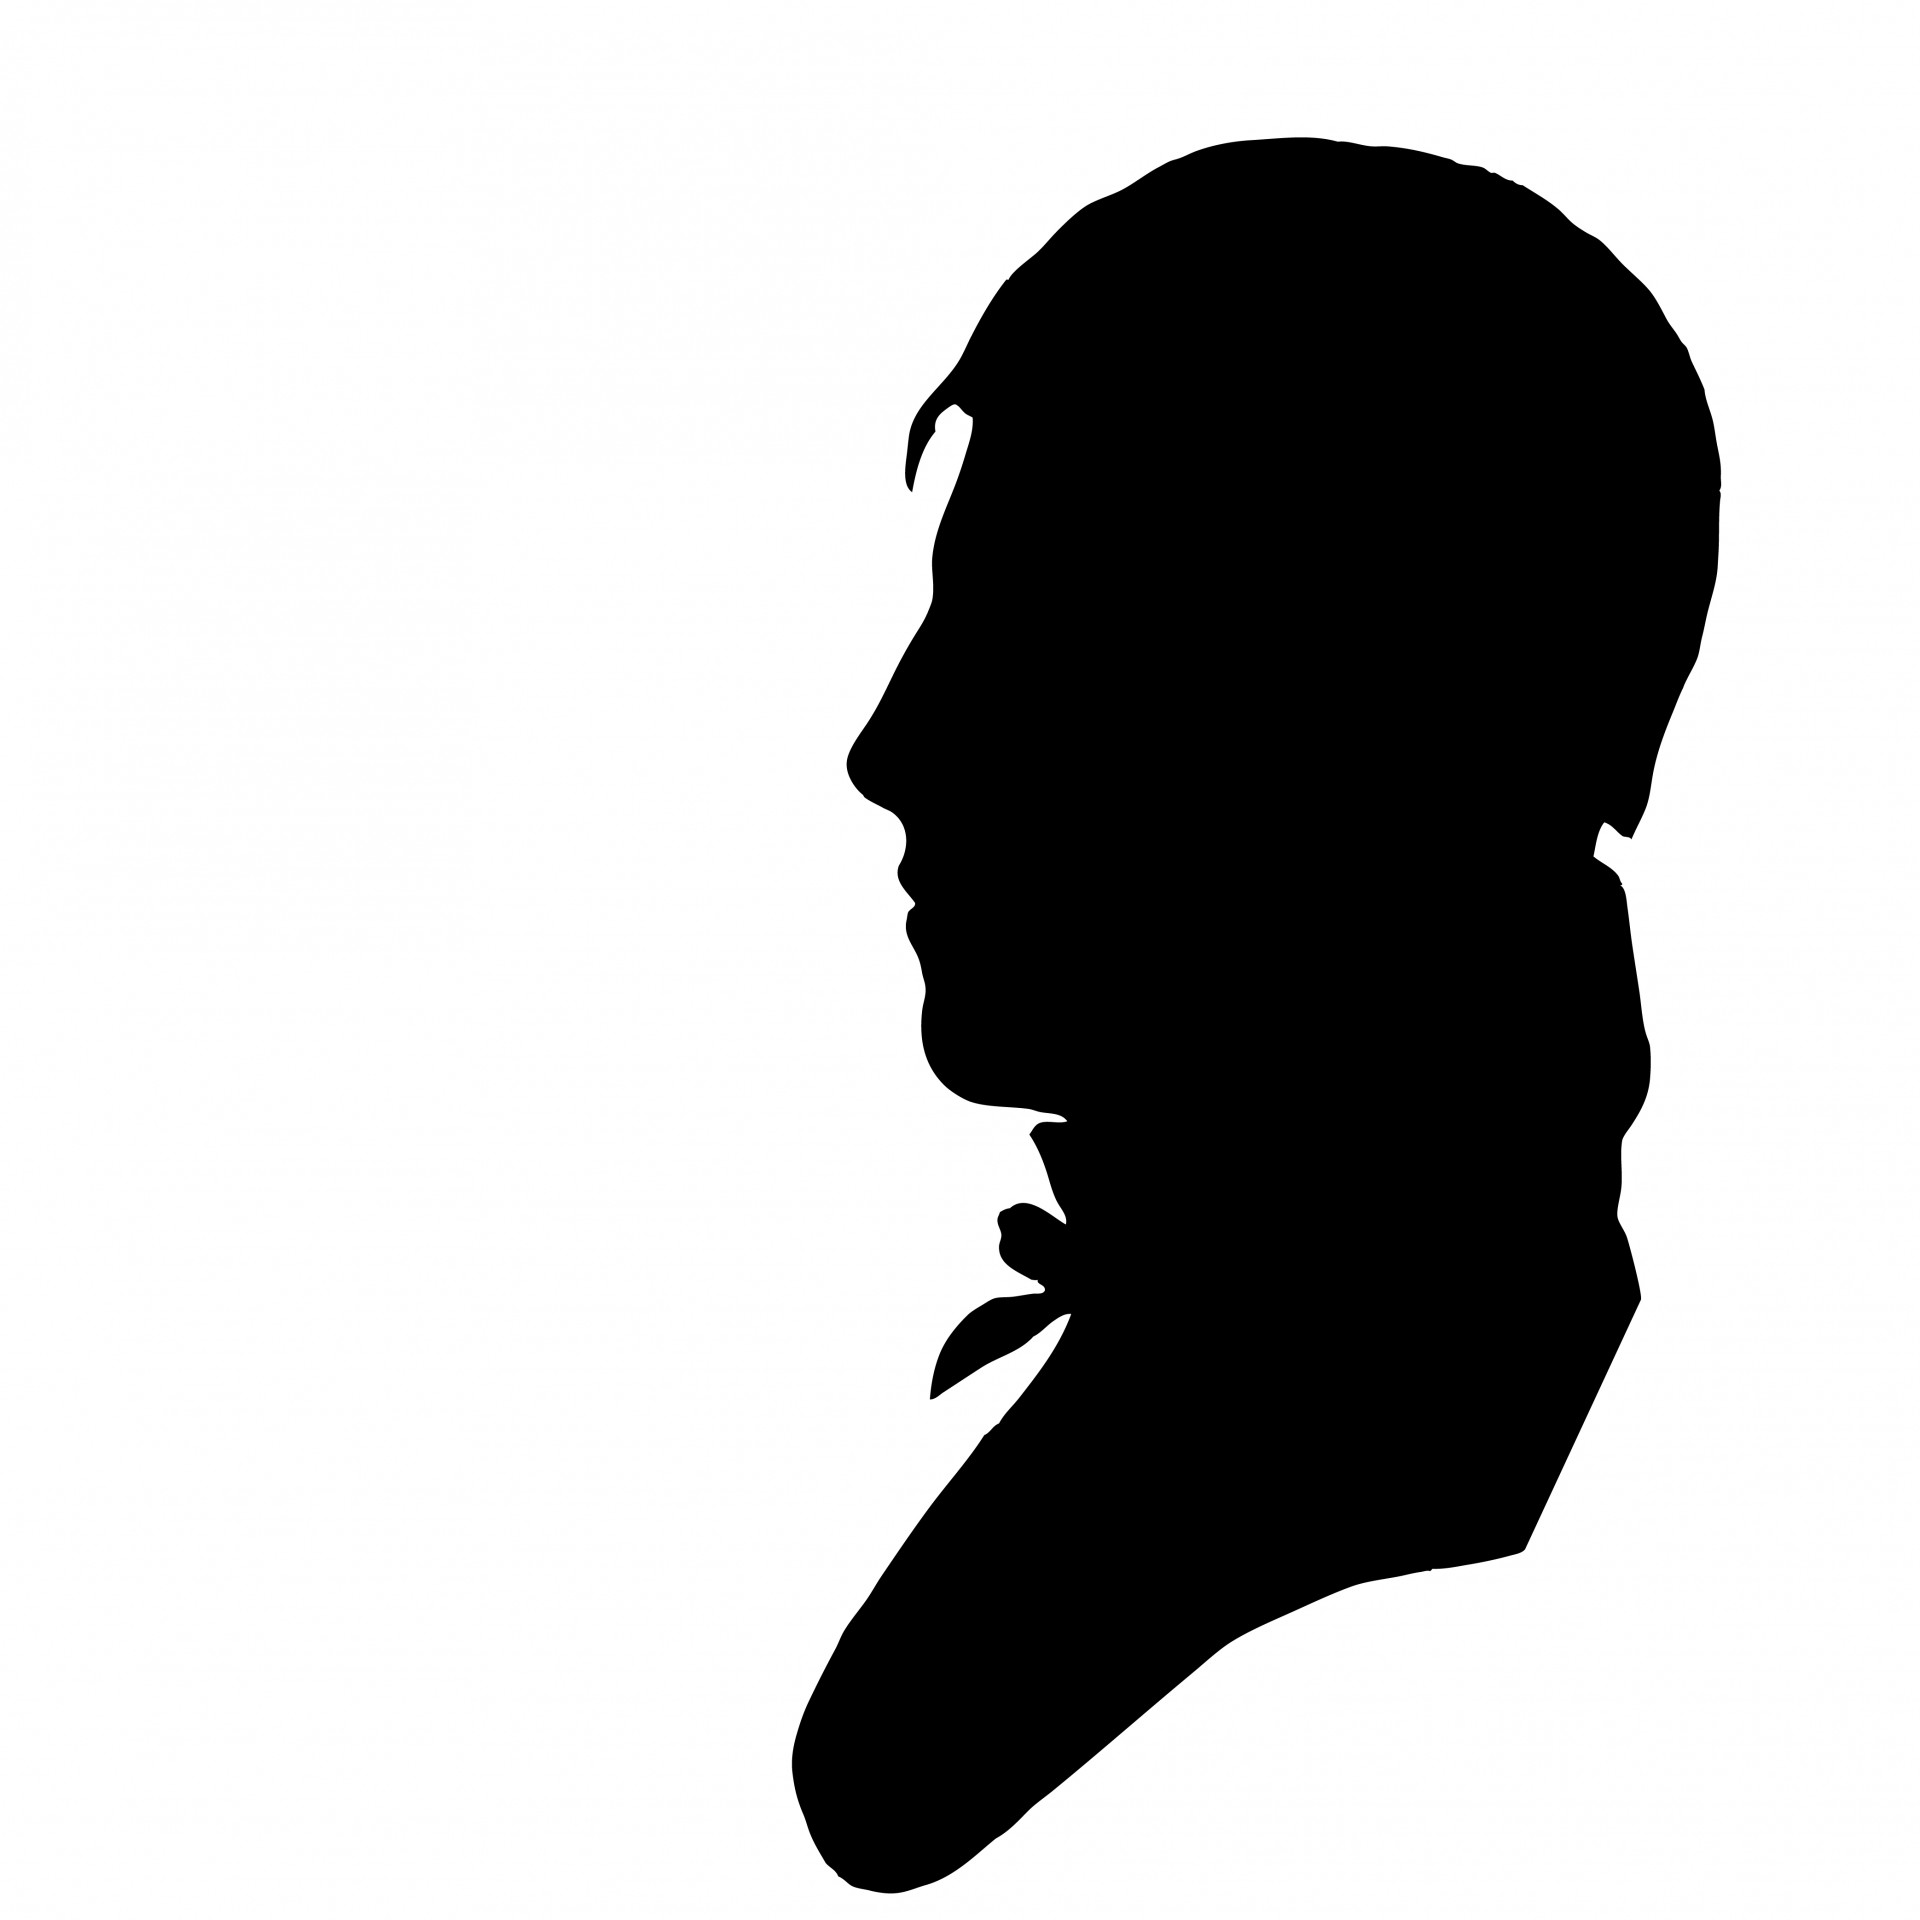 1920x1920 Vintage Male Profile Silhouette Free Stock Photo